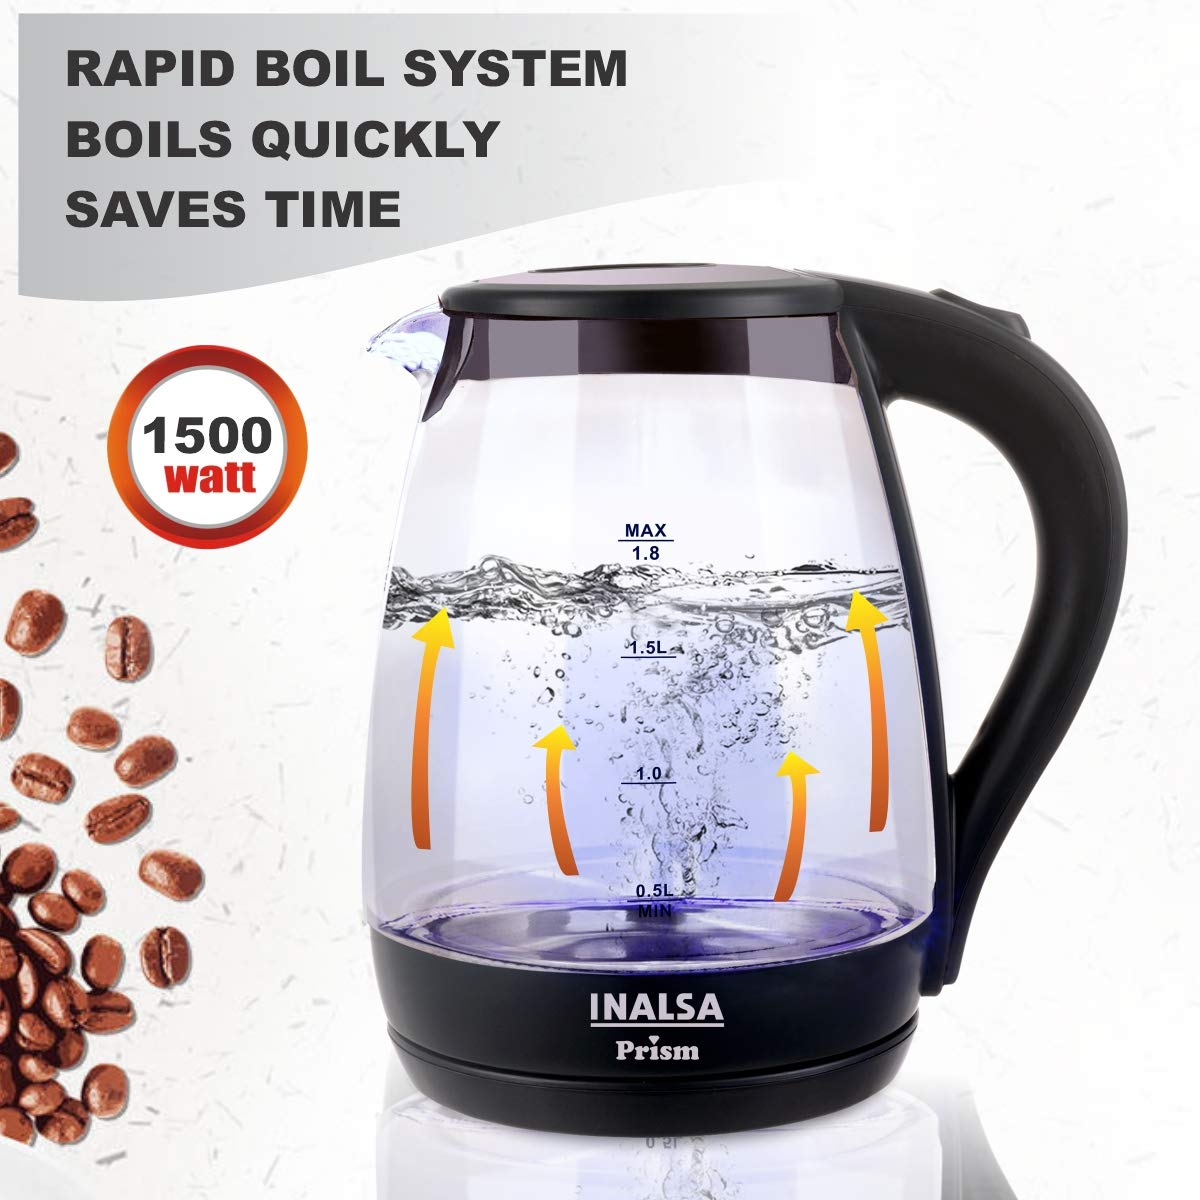 Inalsa electric kettle for boiling water